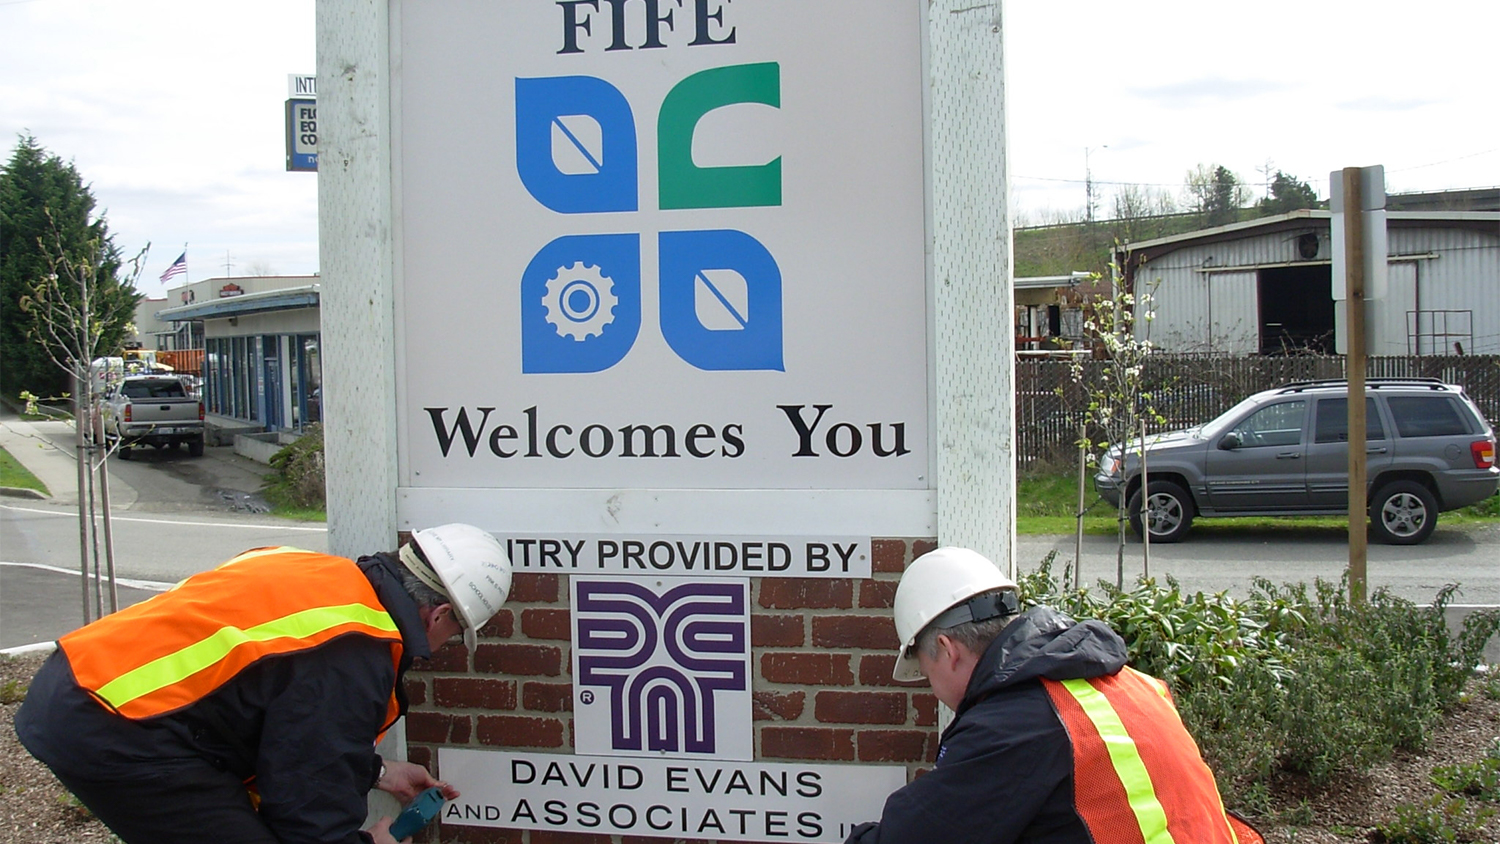 New Fife entrance